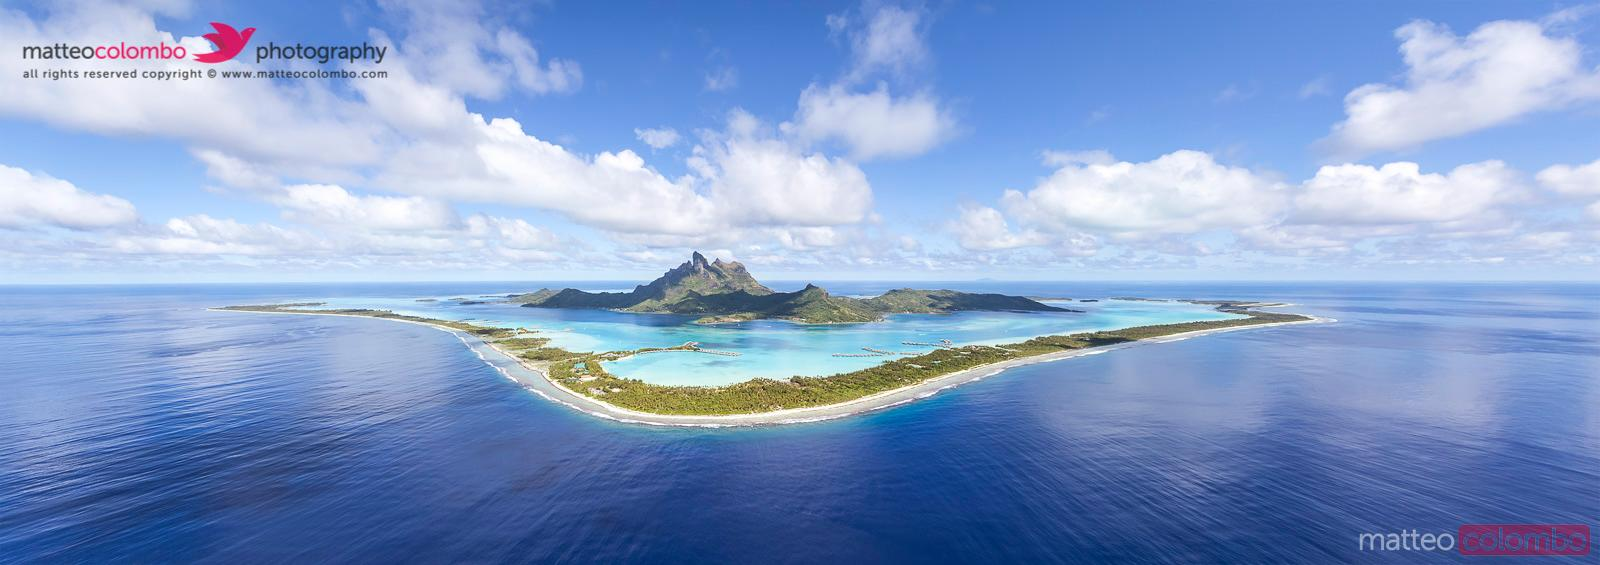 Panoramic aerial view of Bora Bora island, French Polynesia